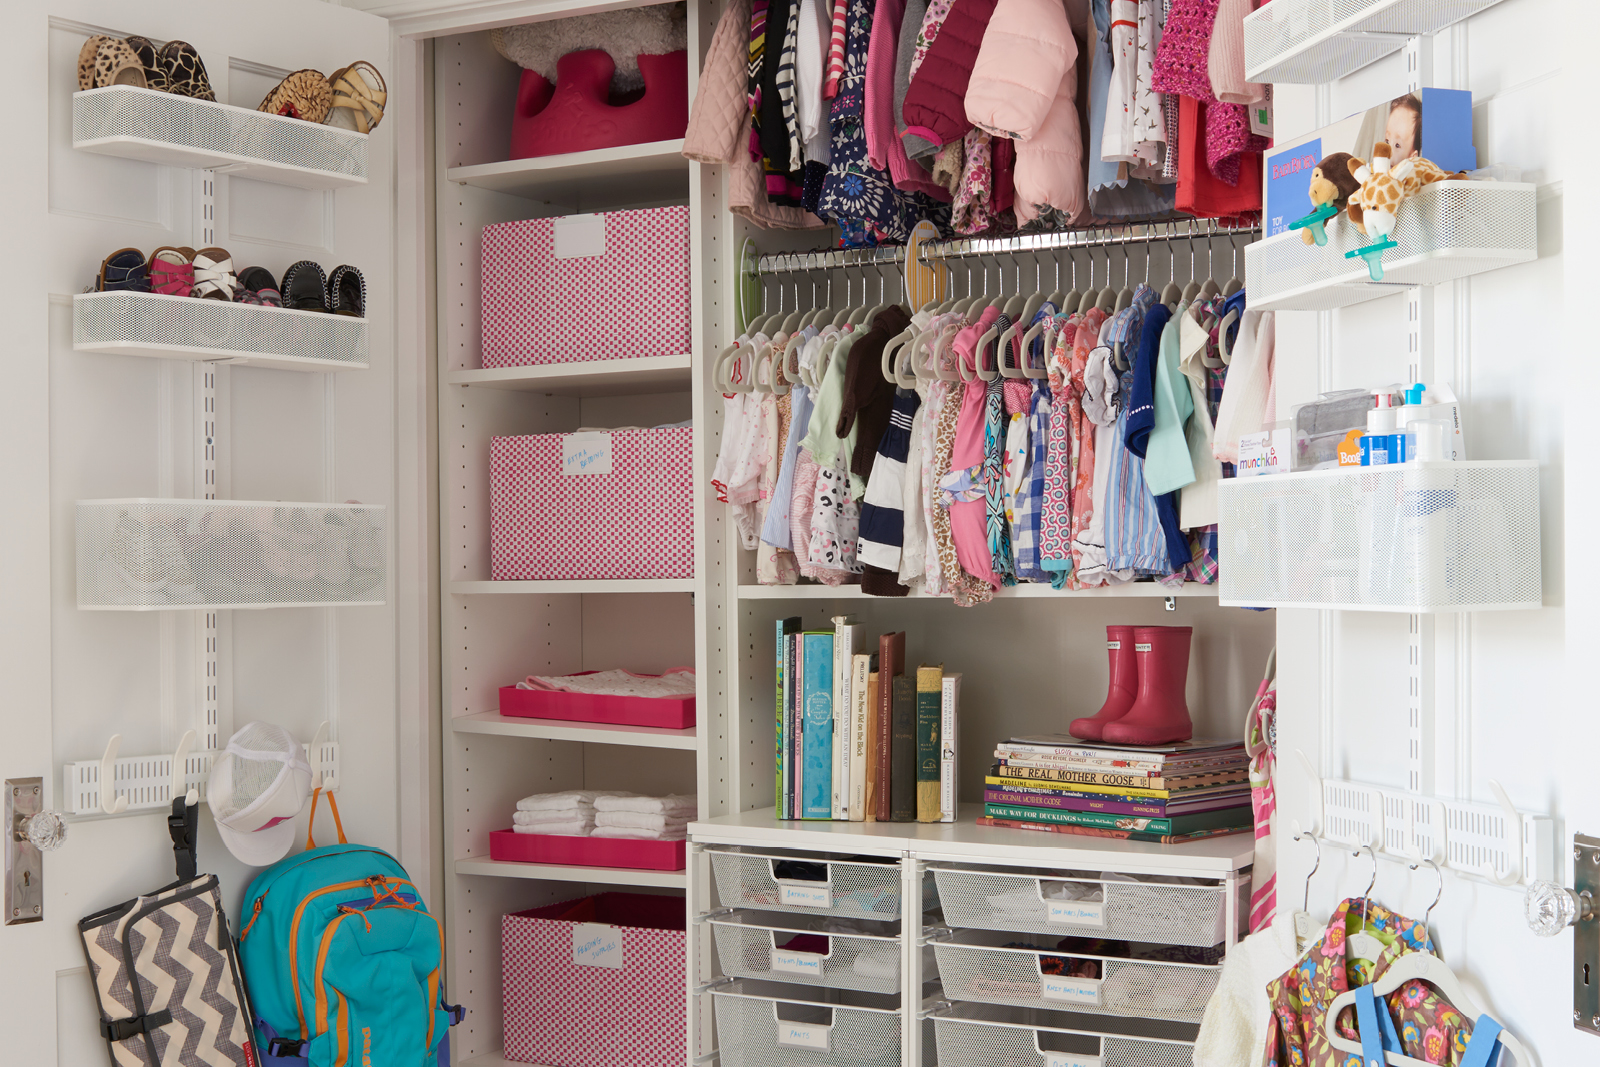 s back buckets baby organizer ideas closet door of tips easy organizing the